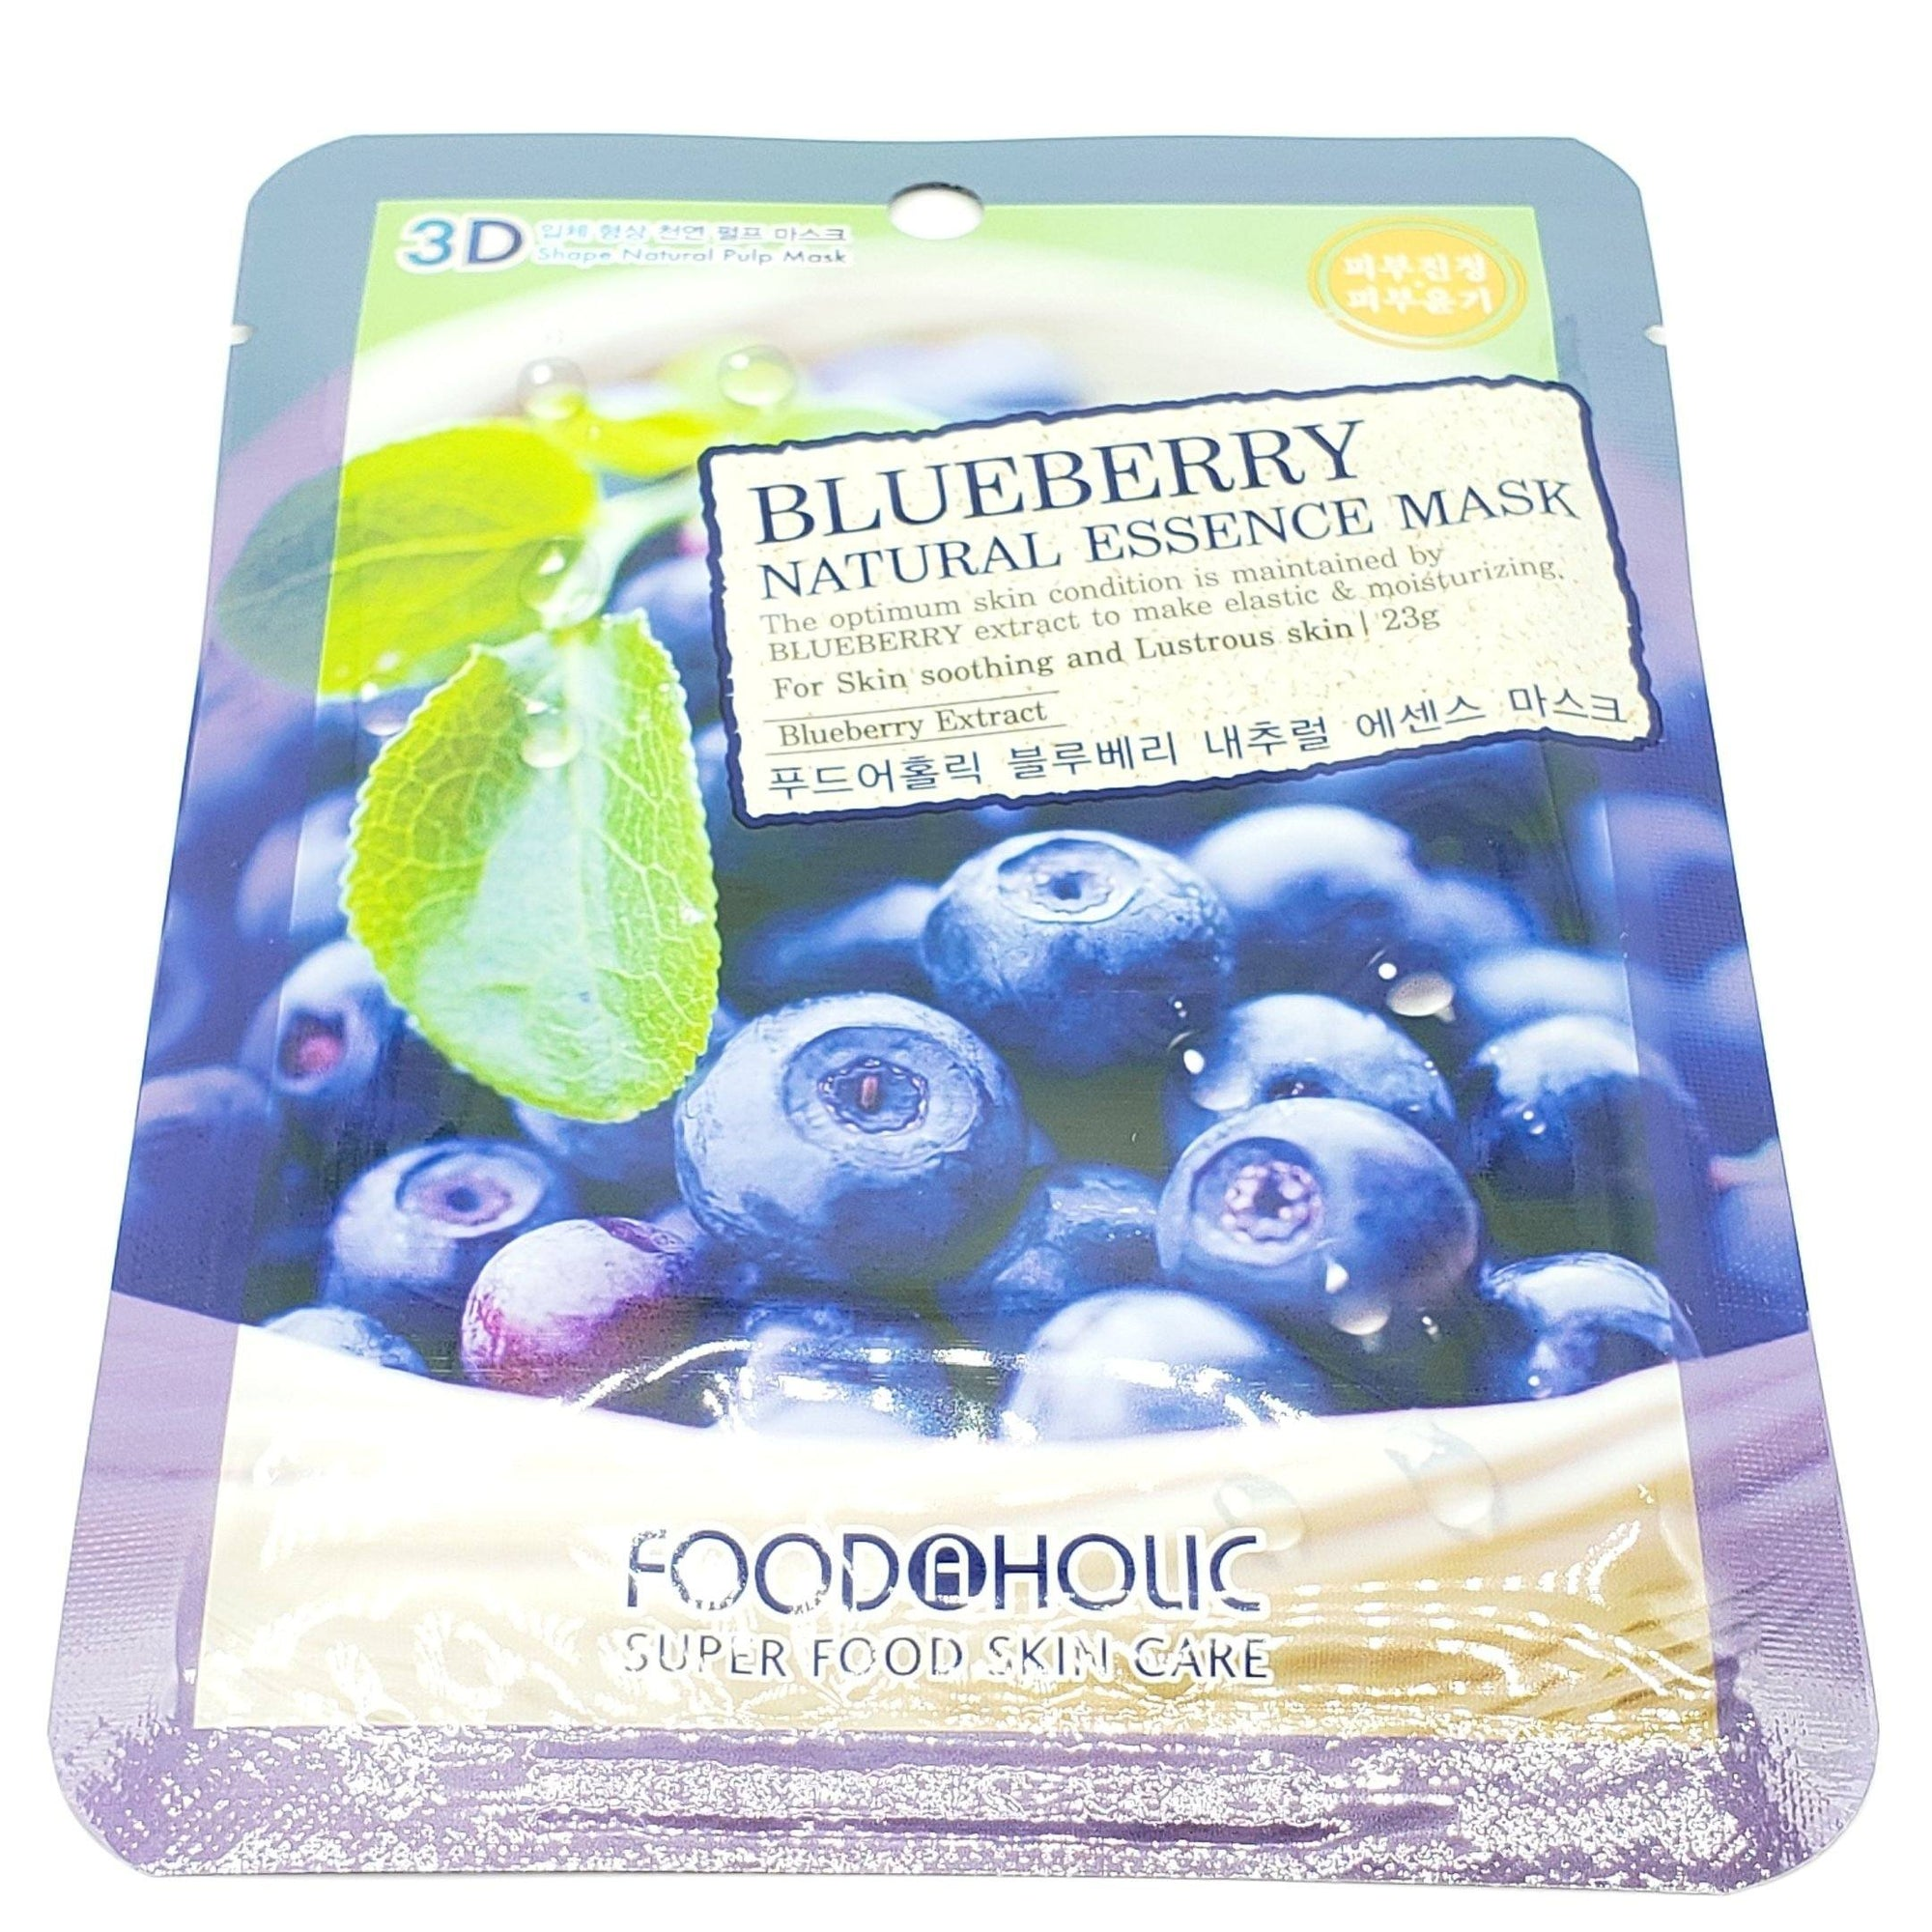 Foodaholic Facial Essence Mask Pack, Blueberry (10PC)